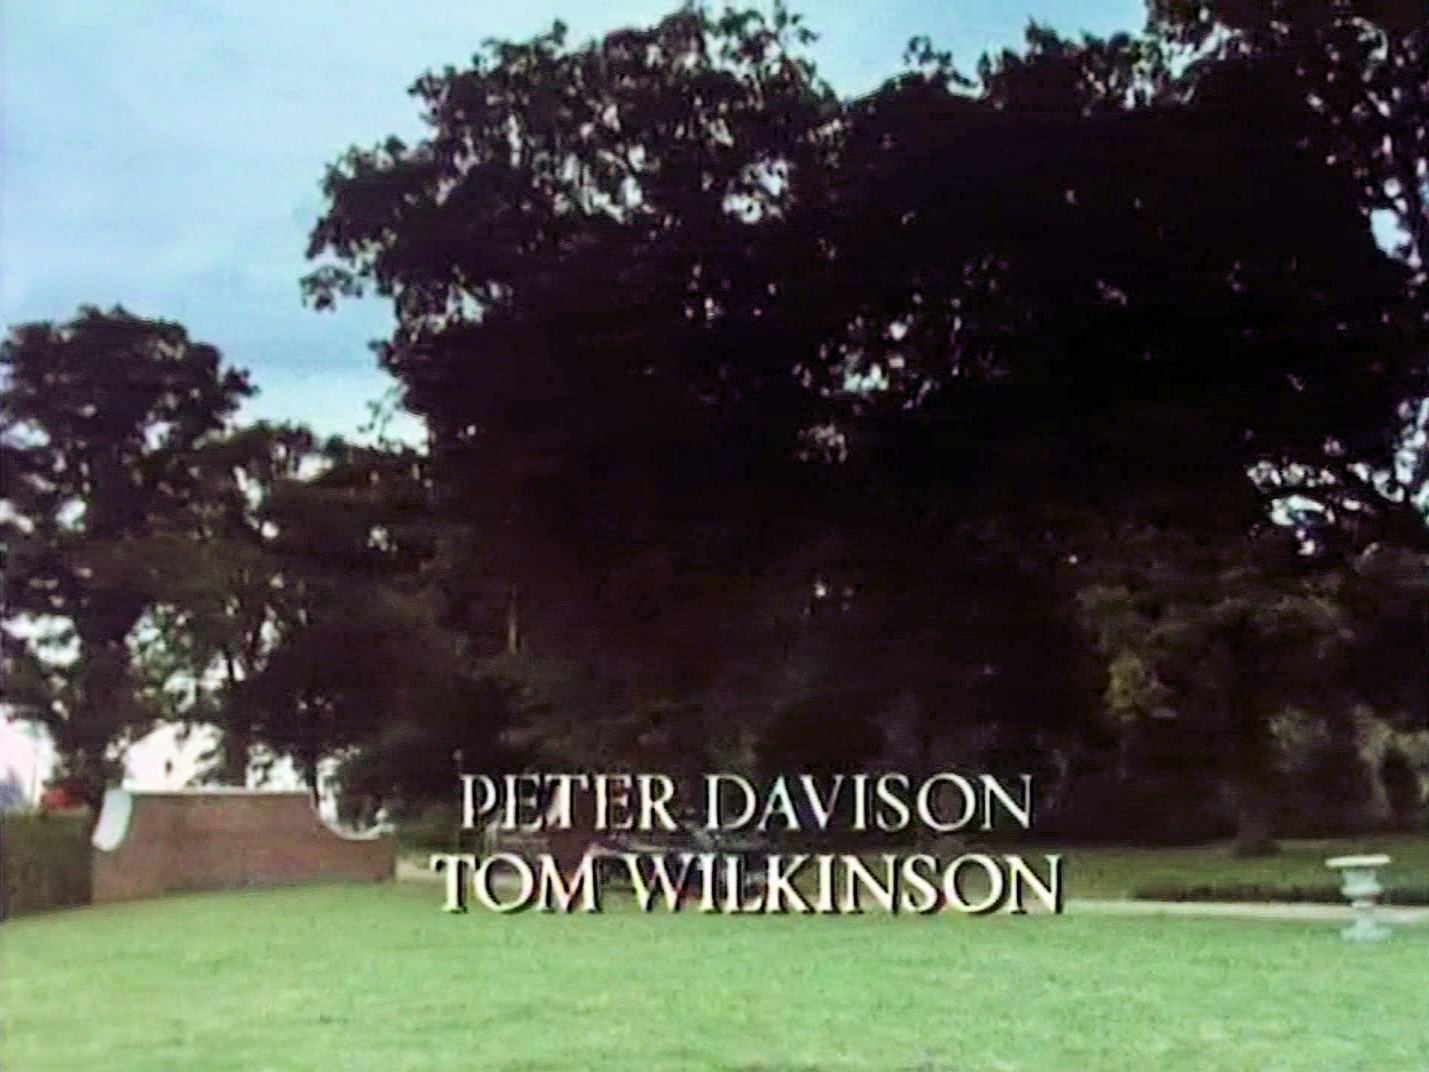 Main title from the 1987 'A Pocket Full of Rye' episode of Agatha Christie's Miss Marple (1984-1992) (6). Peter Davison, Tom Wilkinson